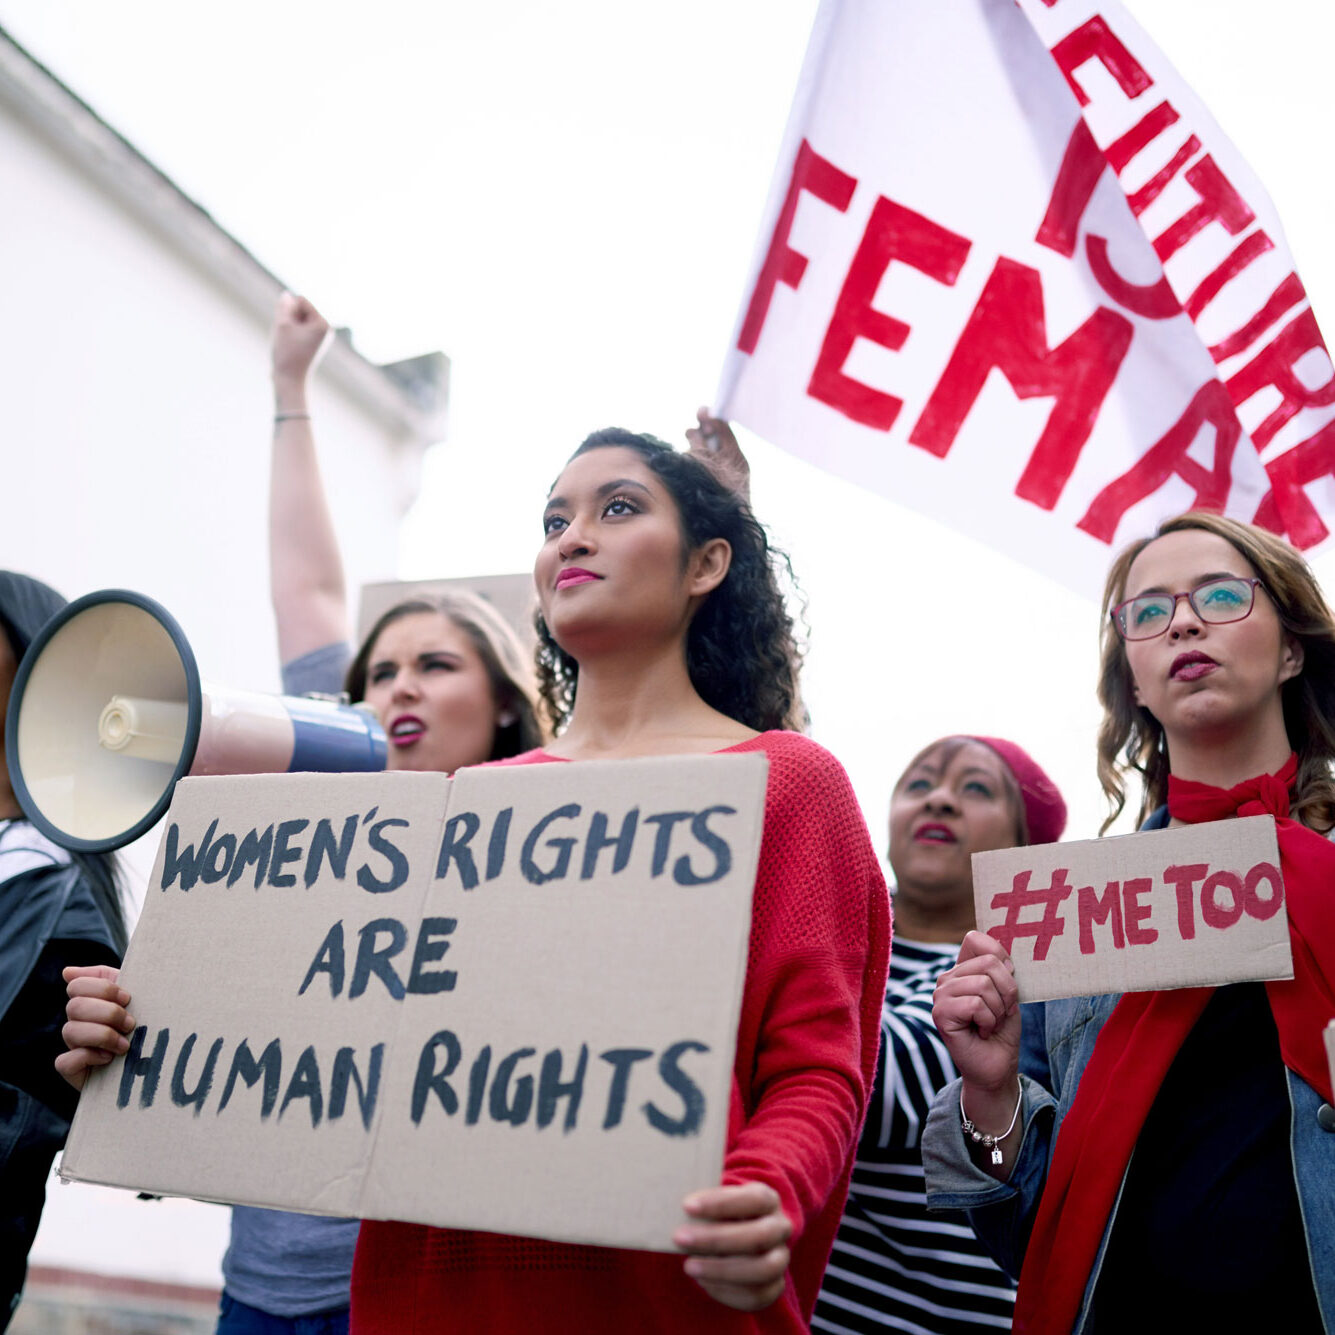 group of women's rights protestors